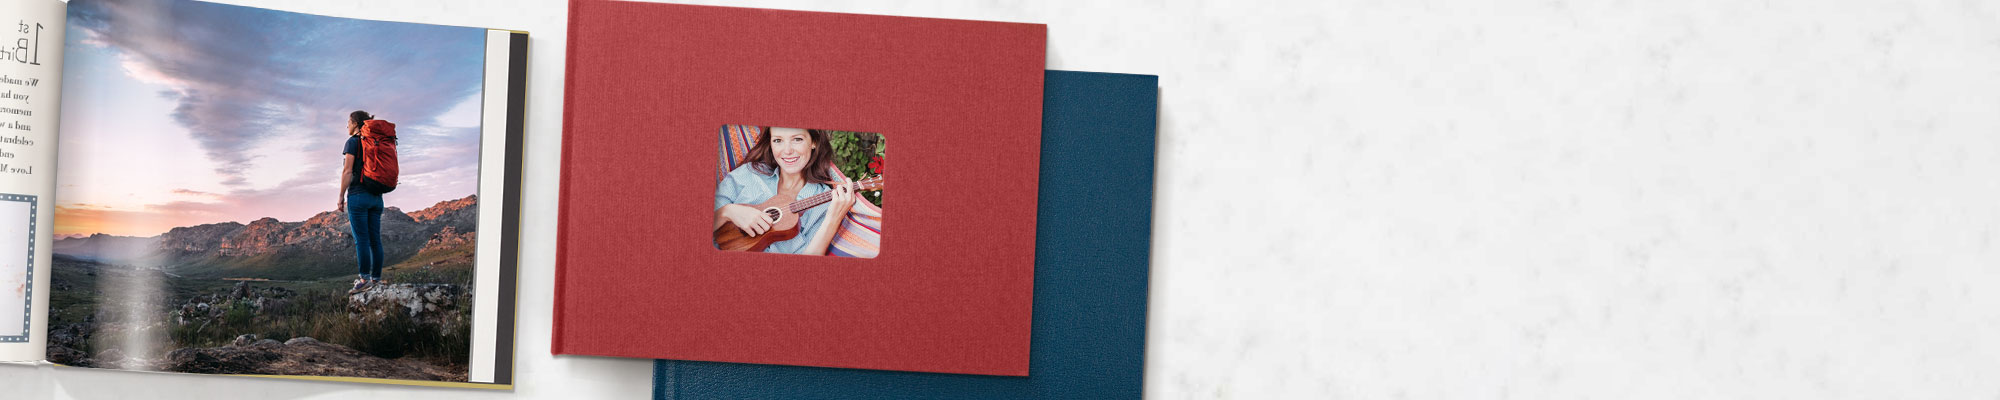 CLEARANCE75% off linen and leather books*